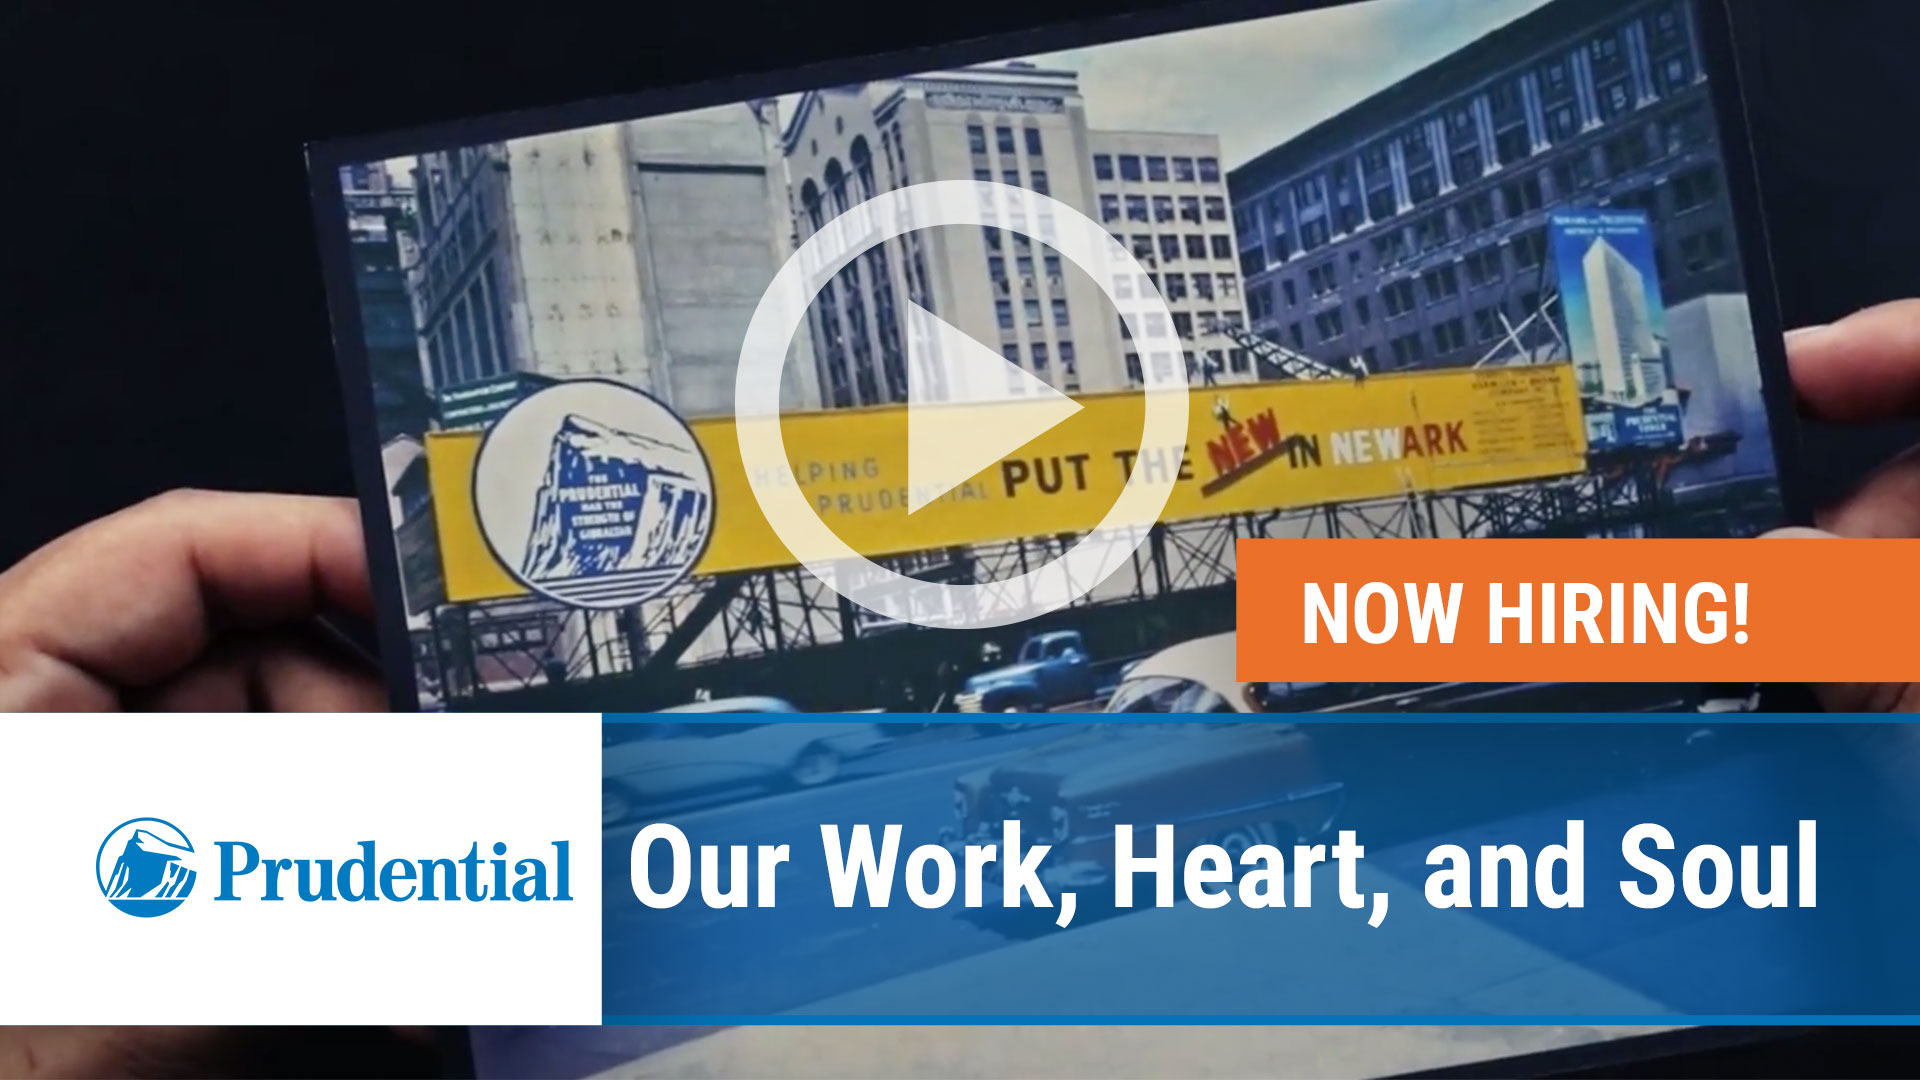 Watch our careers video for available job opening Our Work, Heart, and Soul in Newark NJ, New York NY